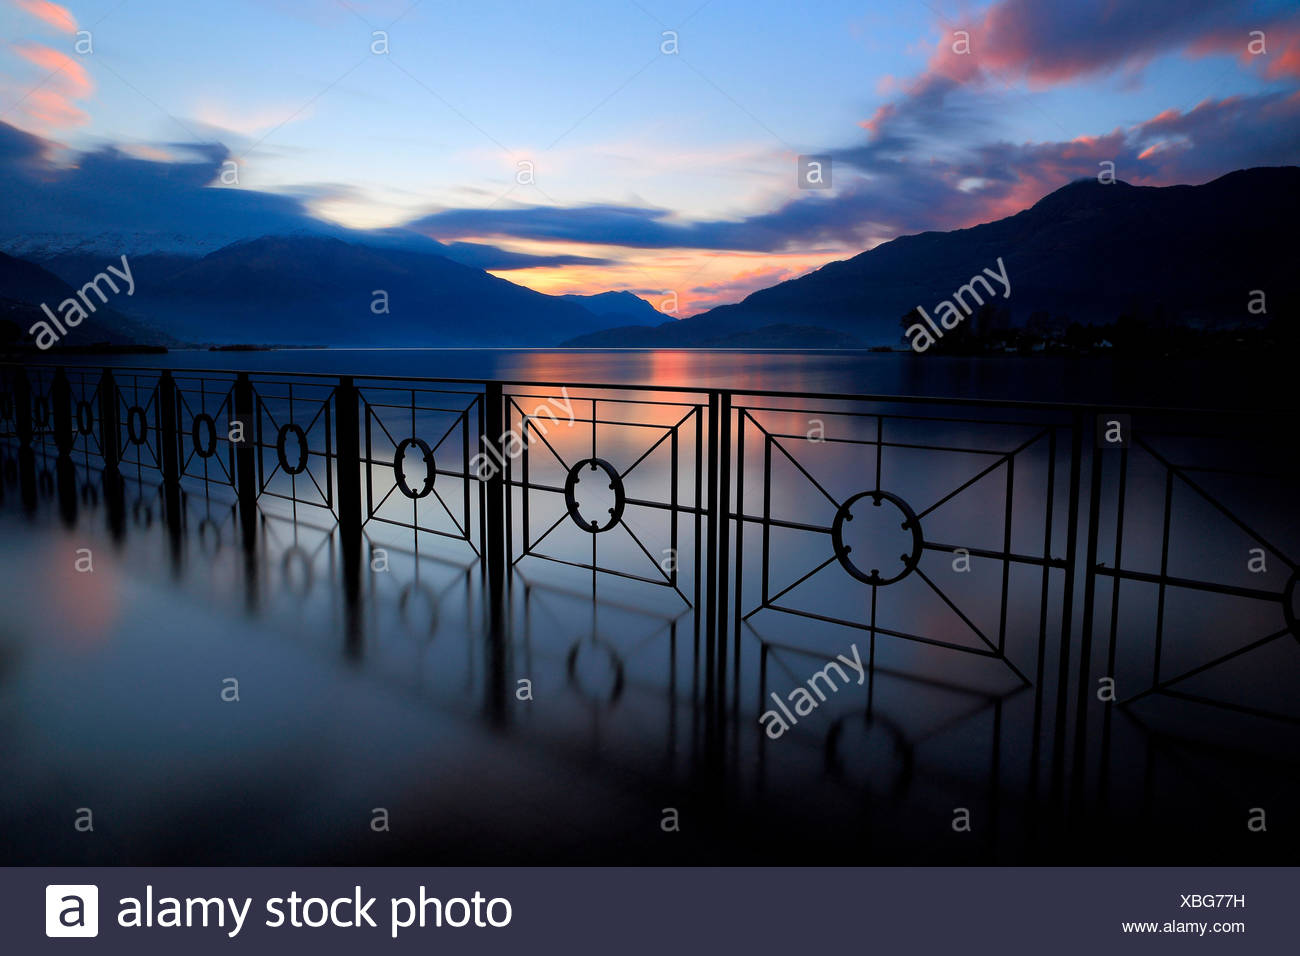 Sunset on Sorico, river Mera, Lake Como, Lombardy, Italy Stock Photo